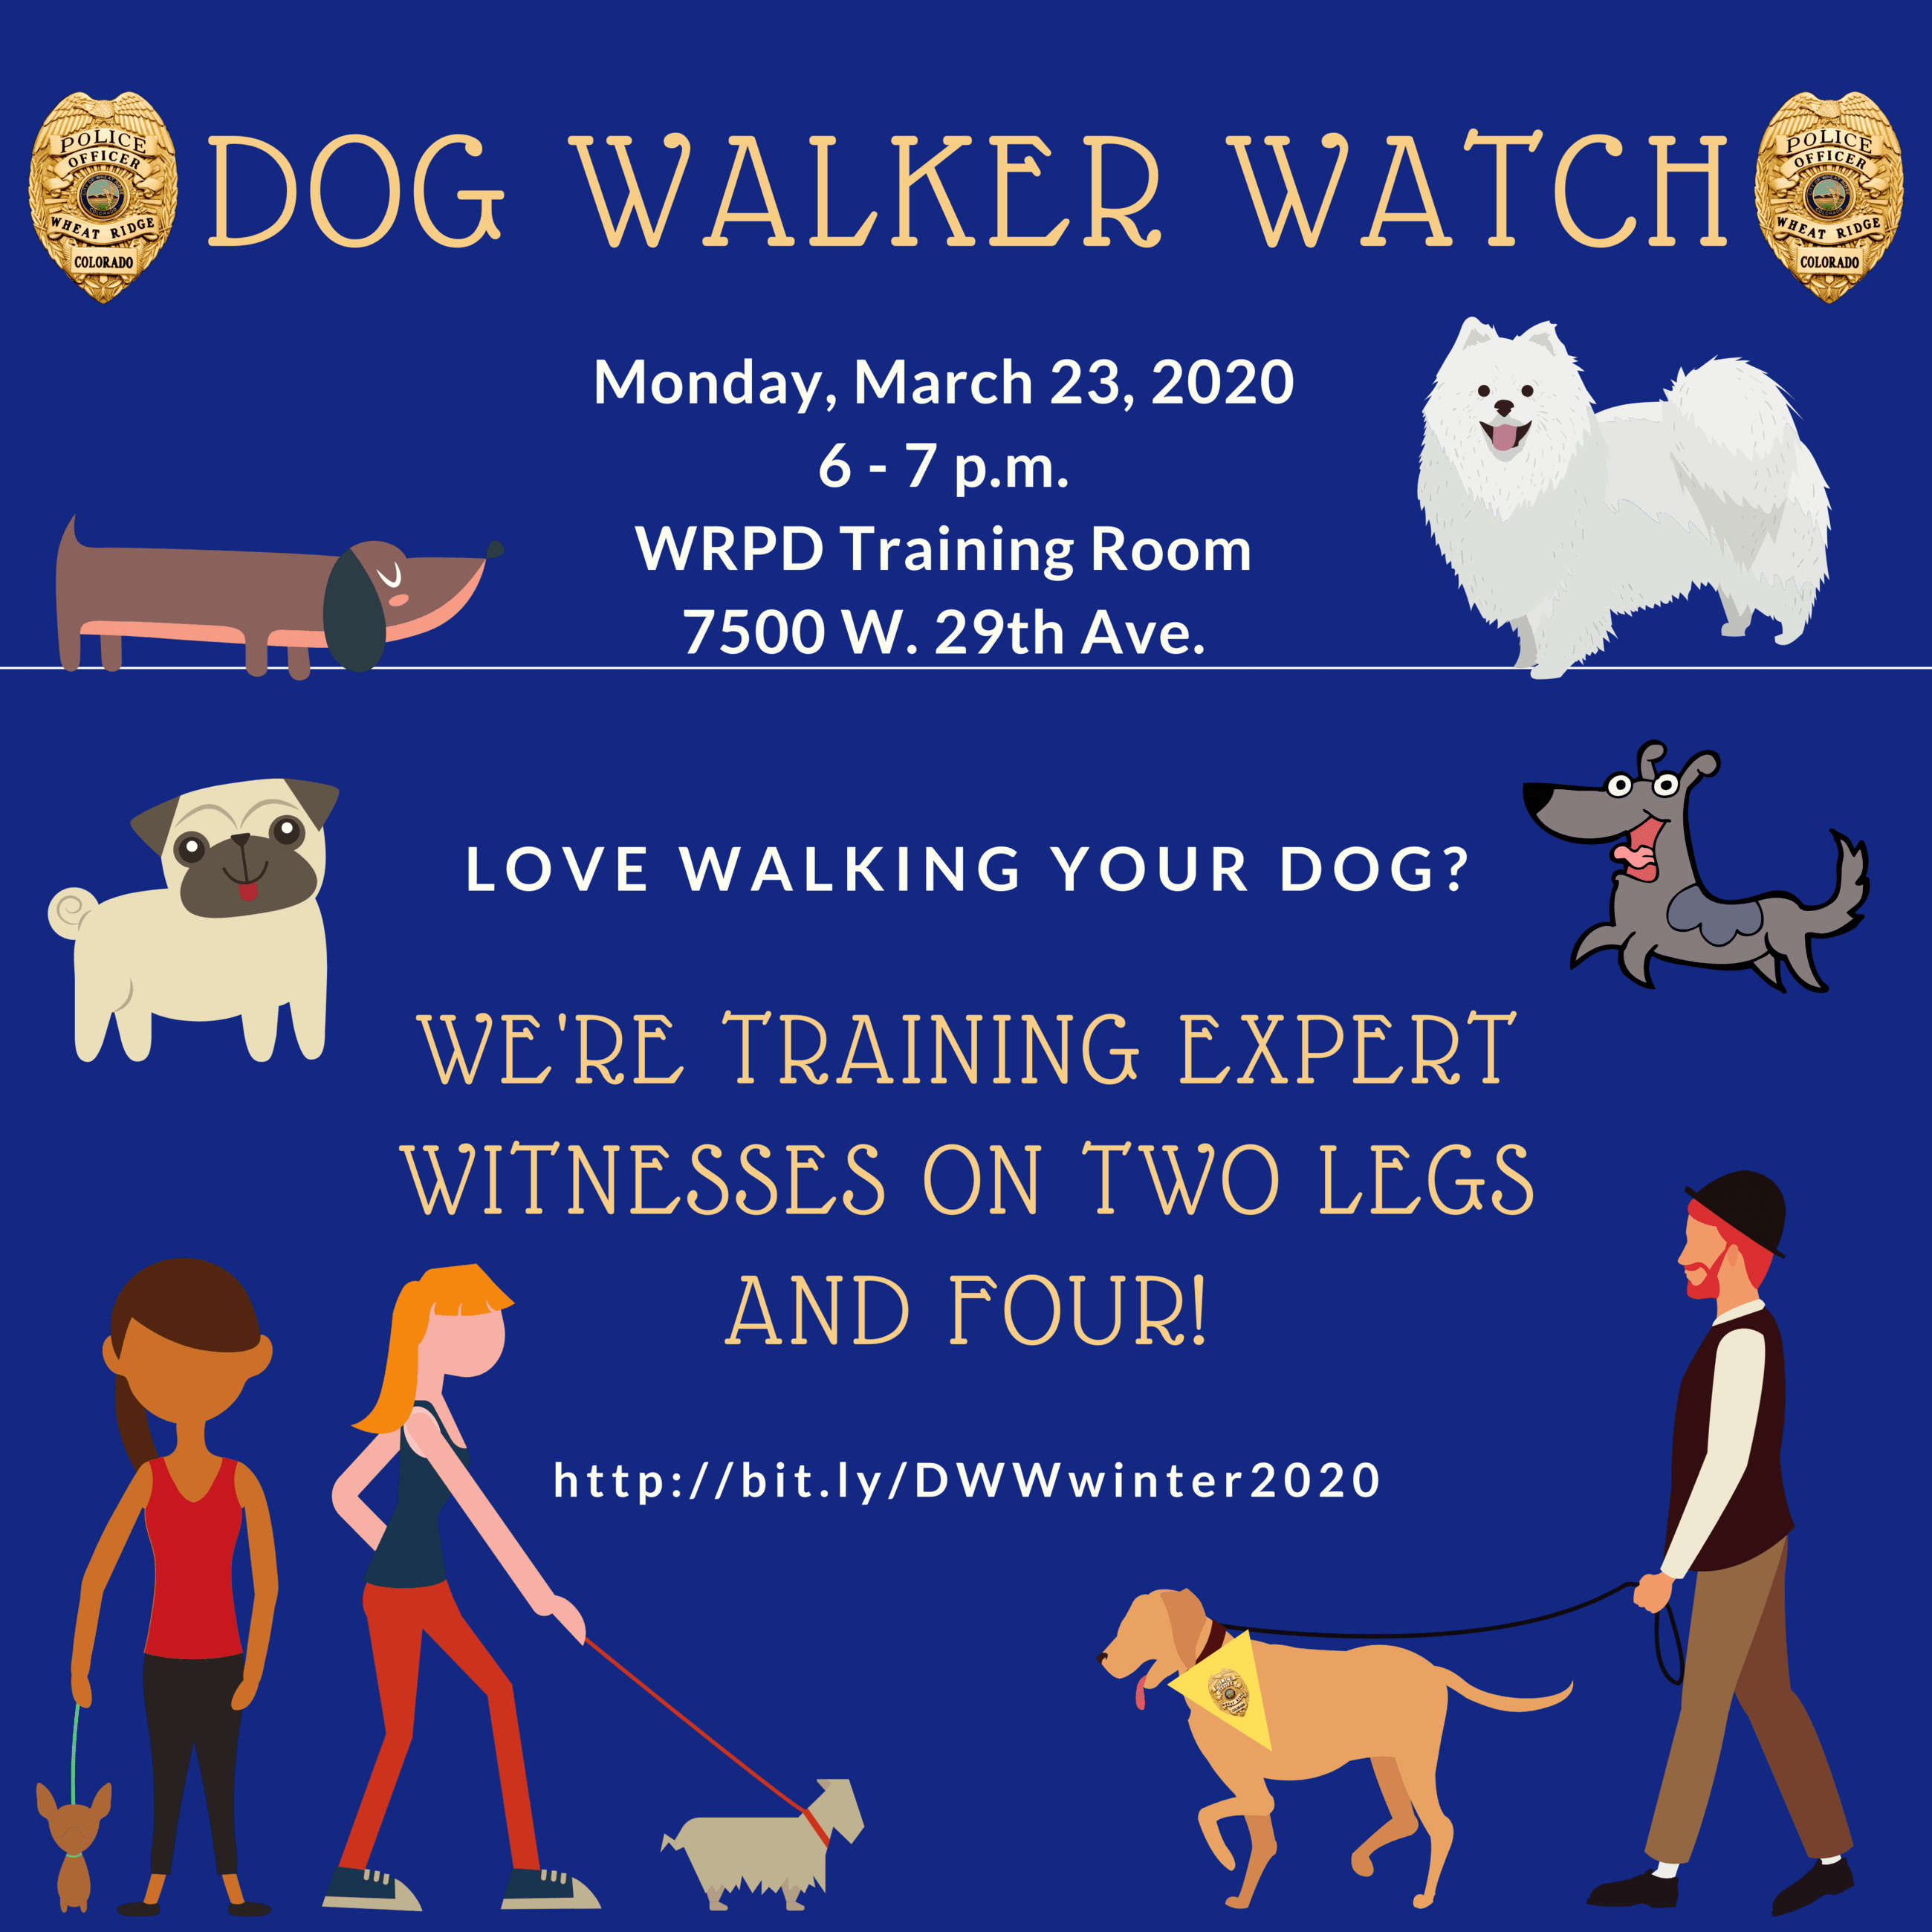 Dog Walker Watch 2020 flyer